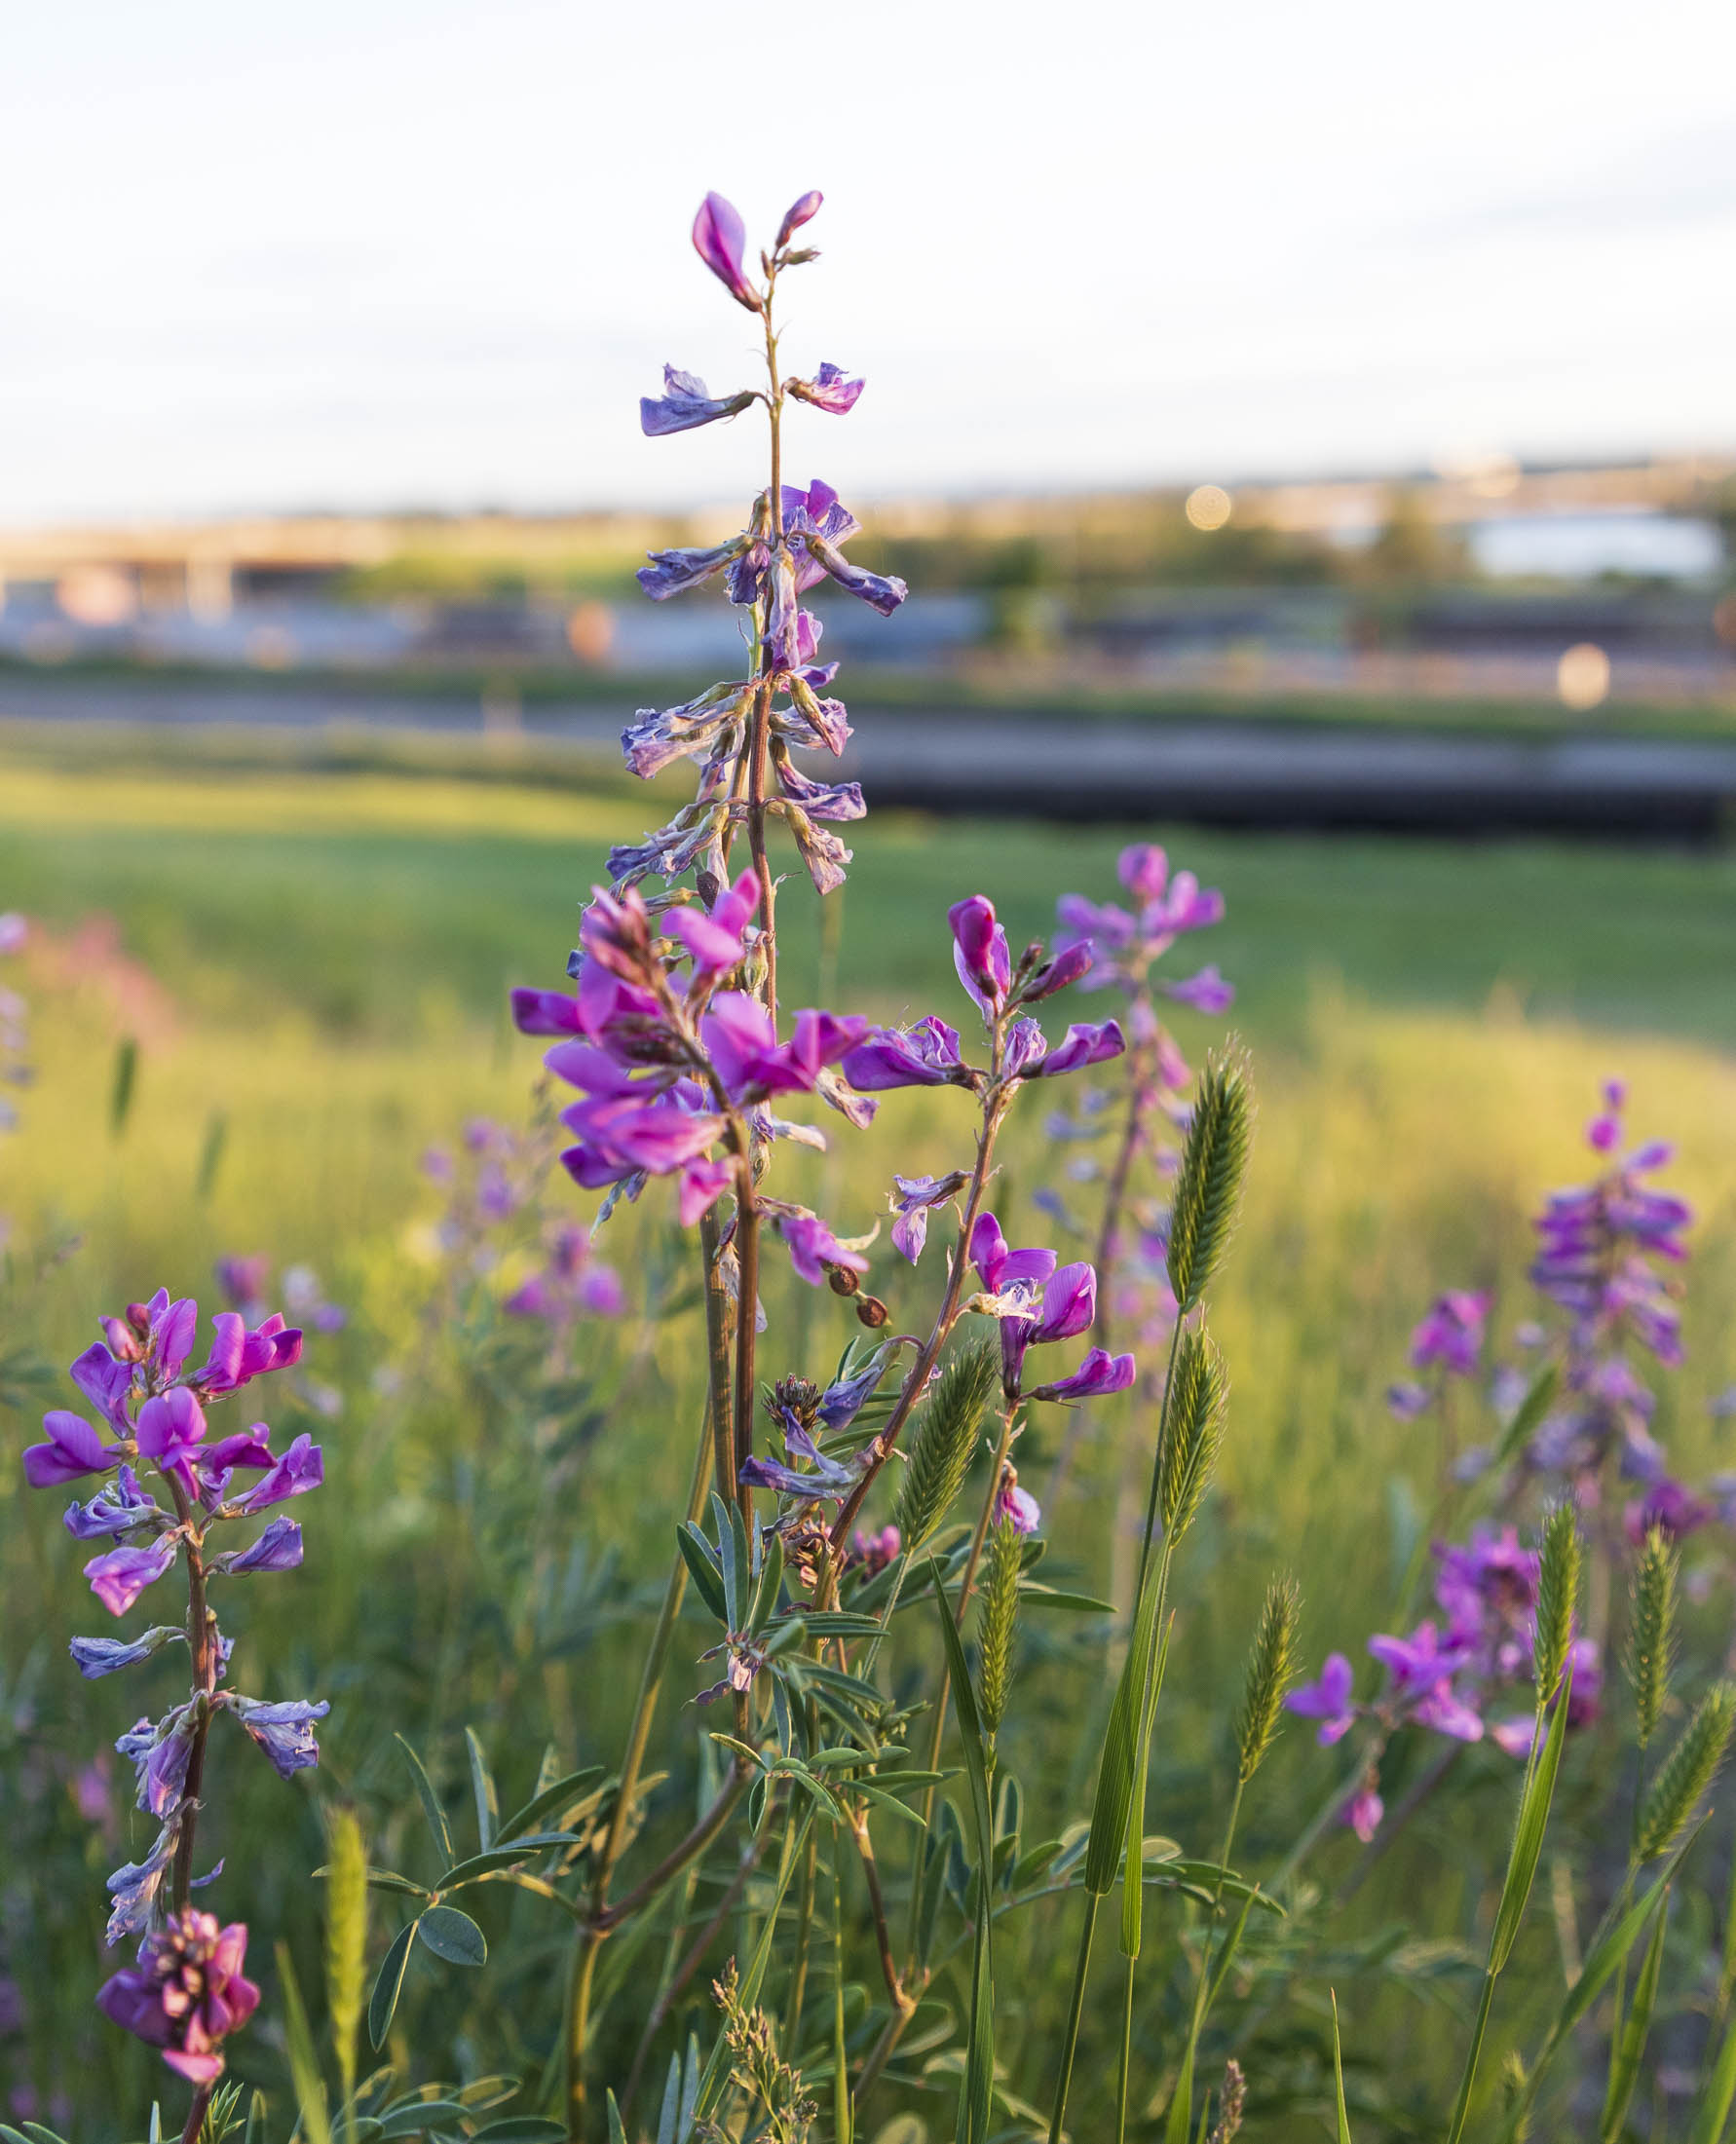 Fireweed or Purple loosestrife